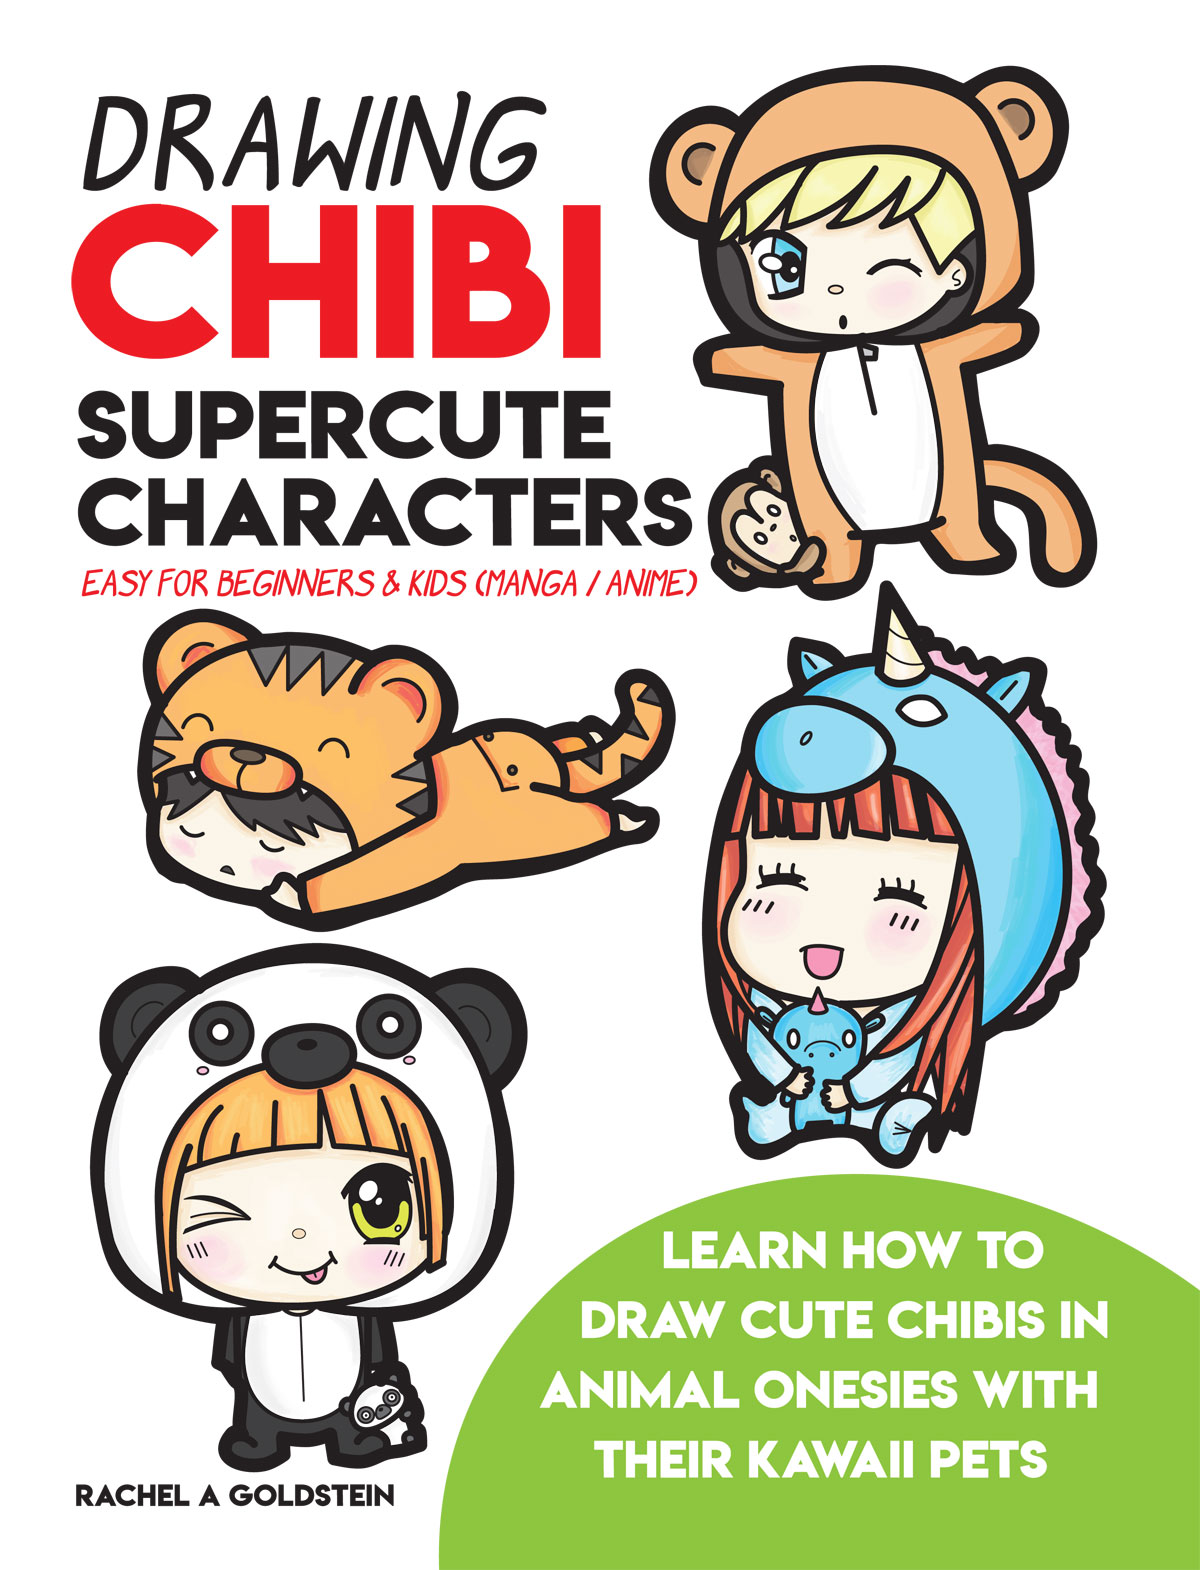 Book Cover Drawing Lessons : Free anime chibi drawing book for kindles if downloaded by